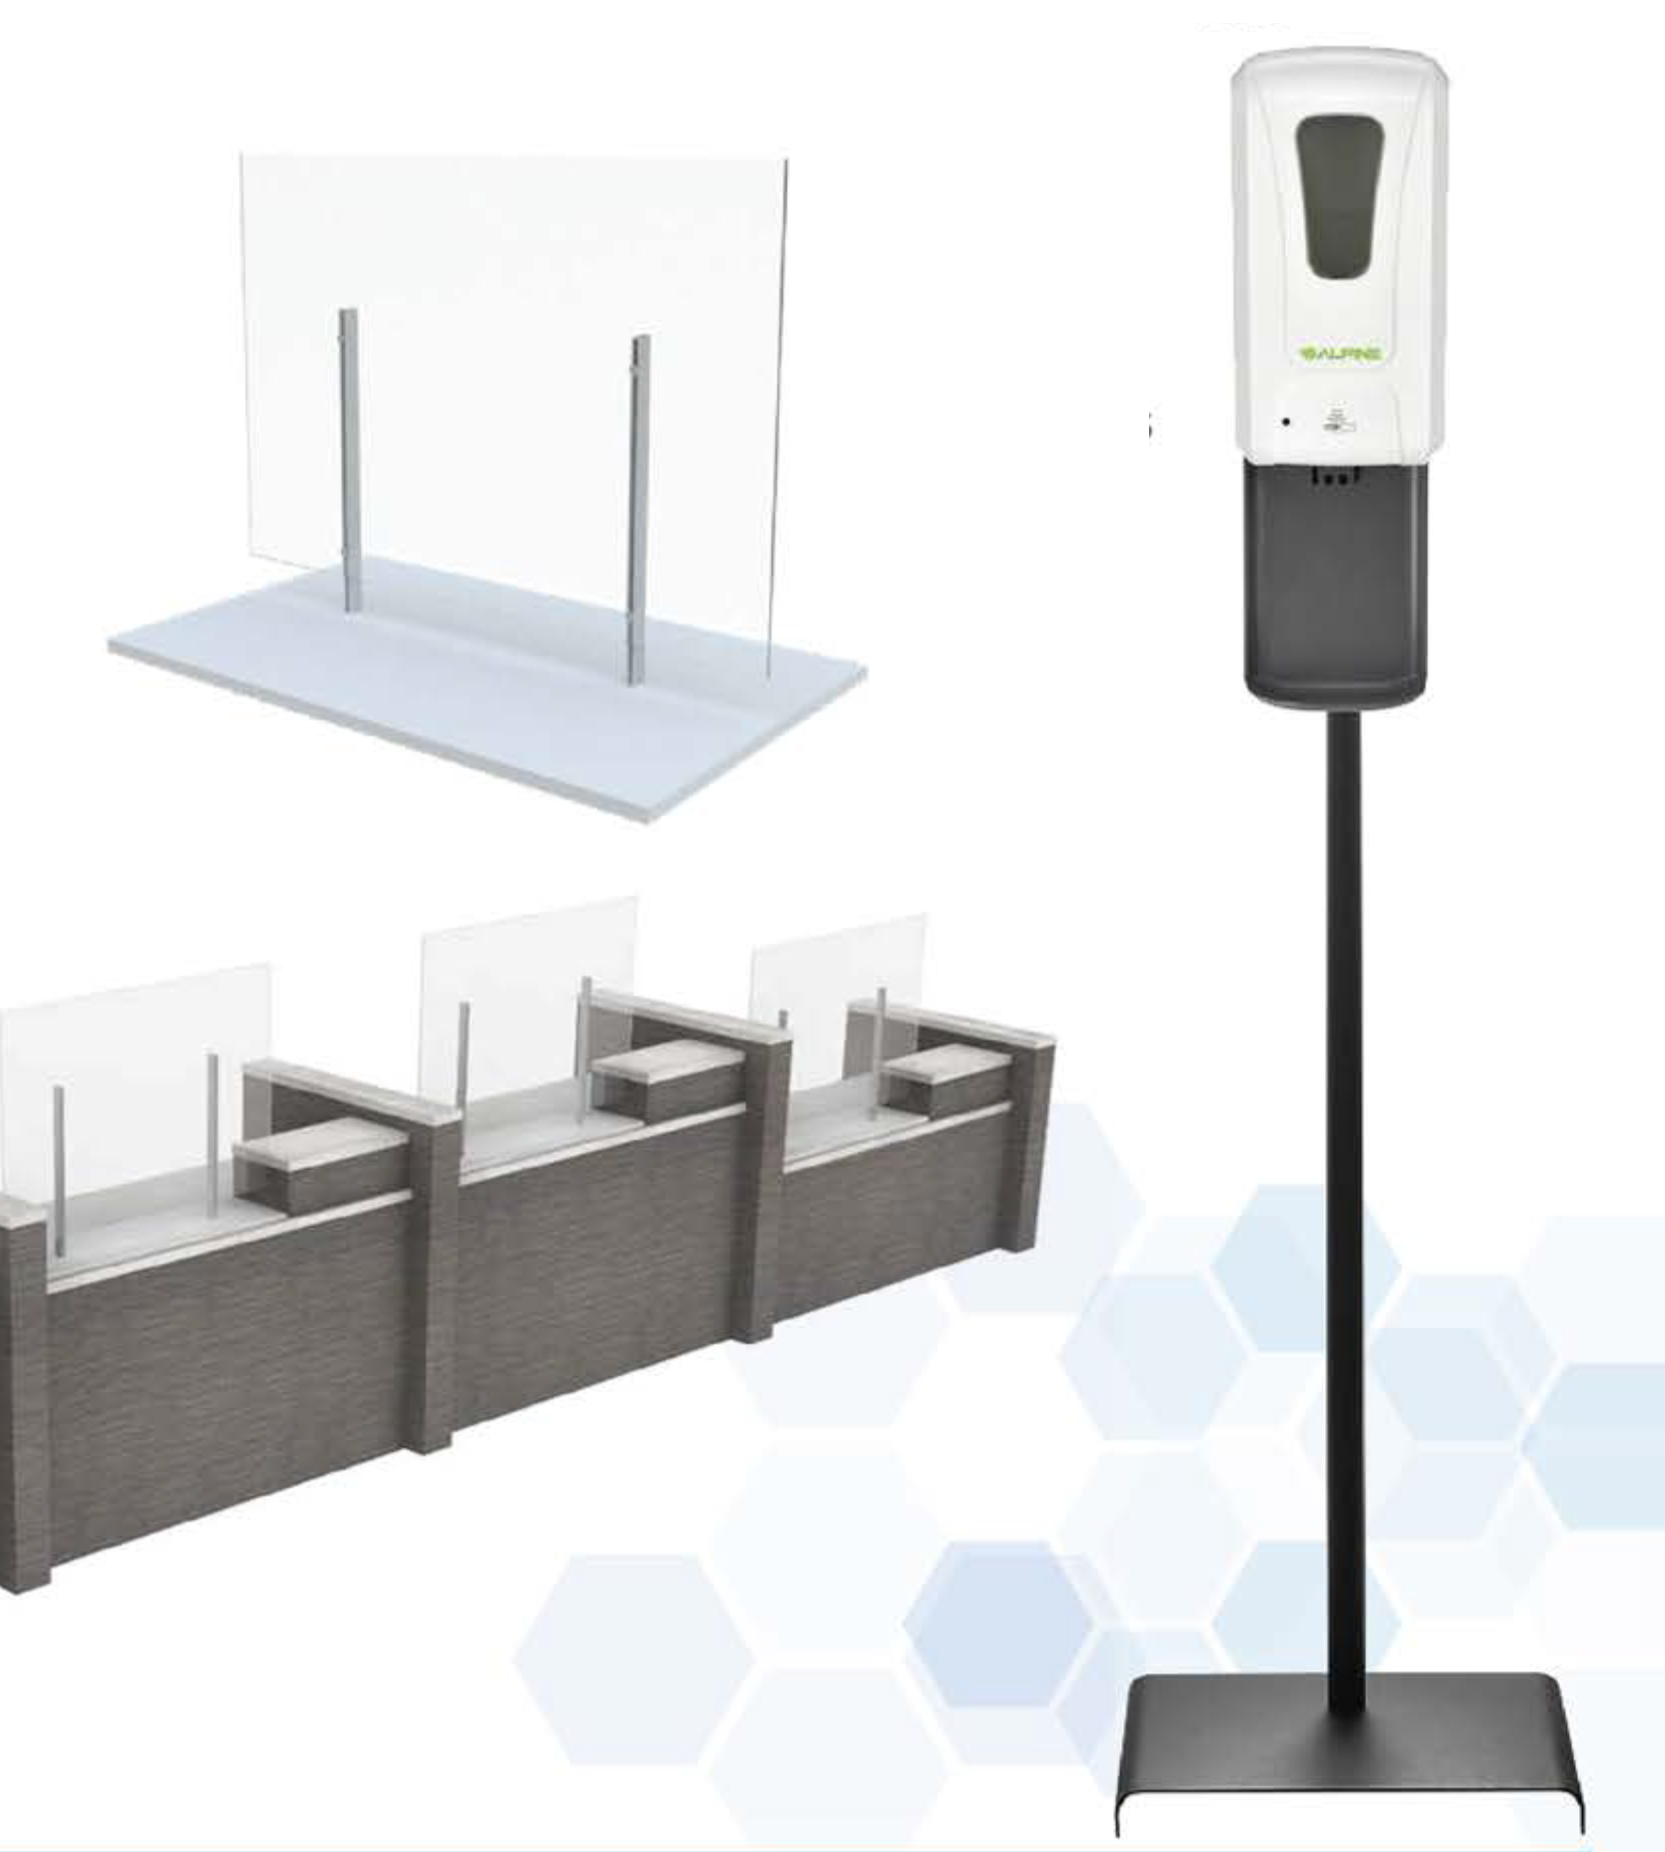 social distancing barriers and a hand sanitizing station